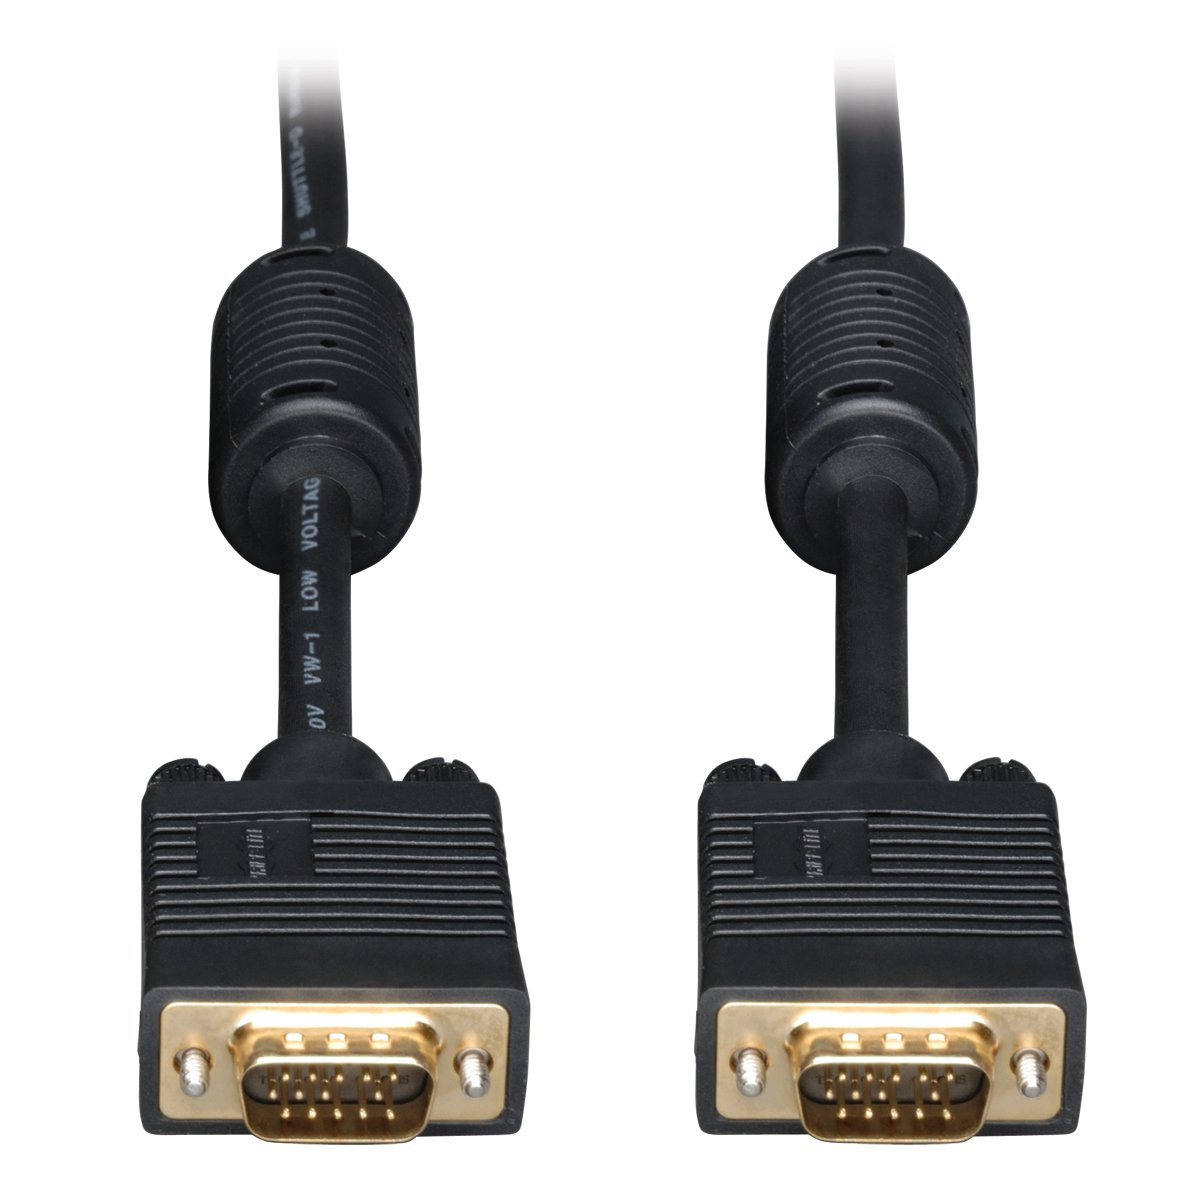 6-ft. HD15 M//M Tripp Lite VGA Coax Monitor Cable P502-006 High Resolution cable with RGB coax